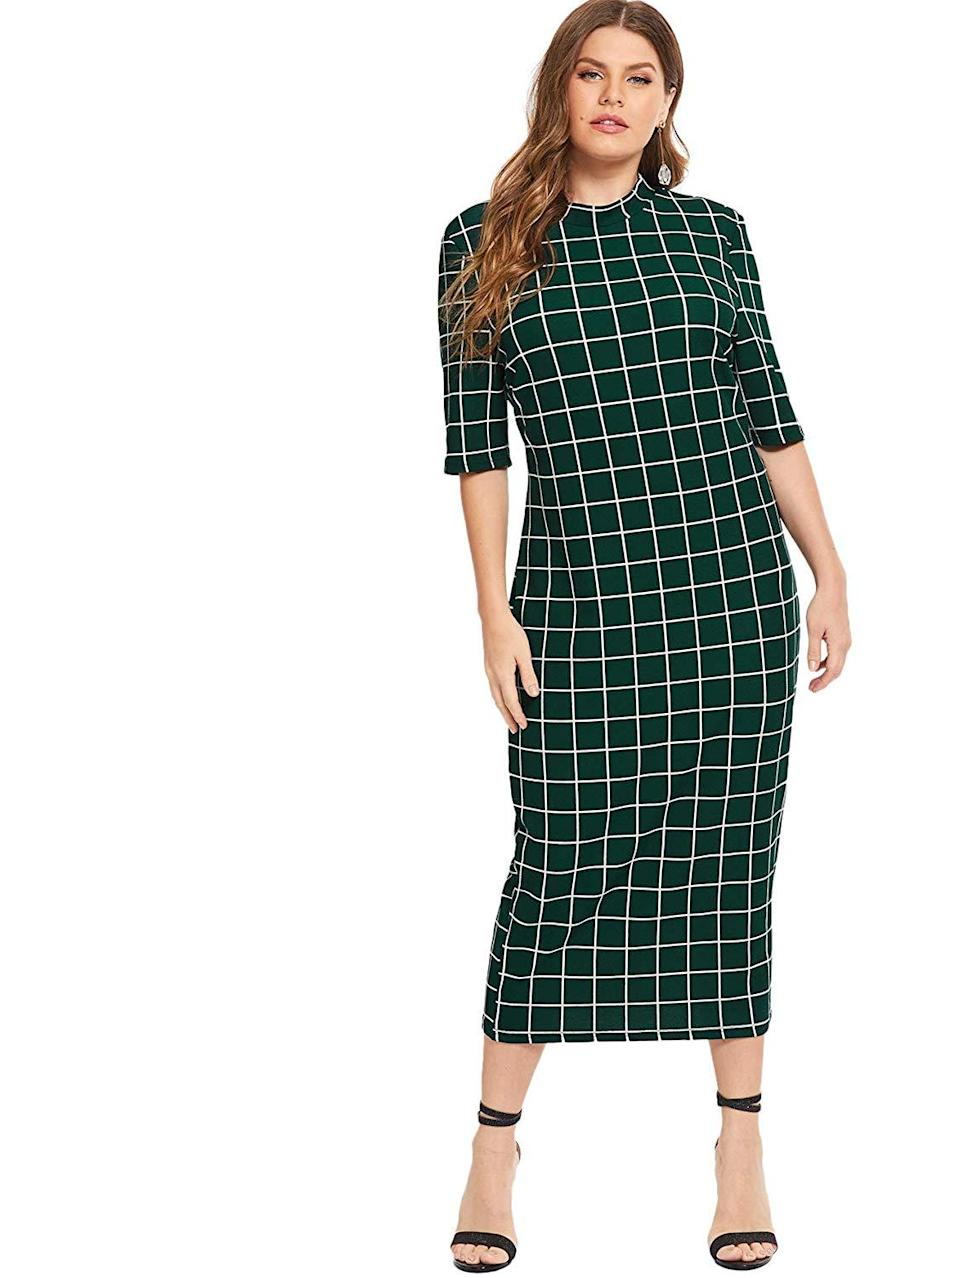 "<br><br><strong>Floerns</strong> Plus-Size Bodycon Pencil Dress, $, available at <a href=""https://amzn.to/3mgtFo9"" rel=""nofollow noopener"" target=""_blank"" data-ylk=""slk:Amazon"" class=""link rapid-noclick-resp"">Amazon</a>"